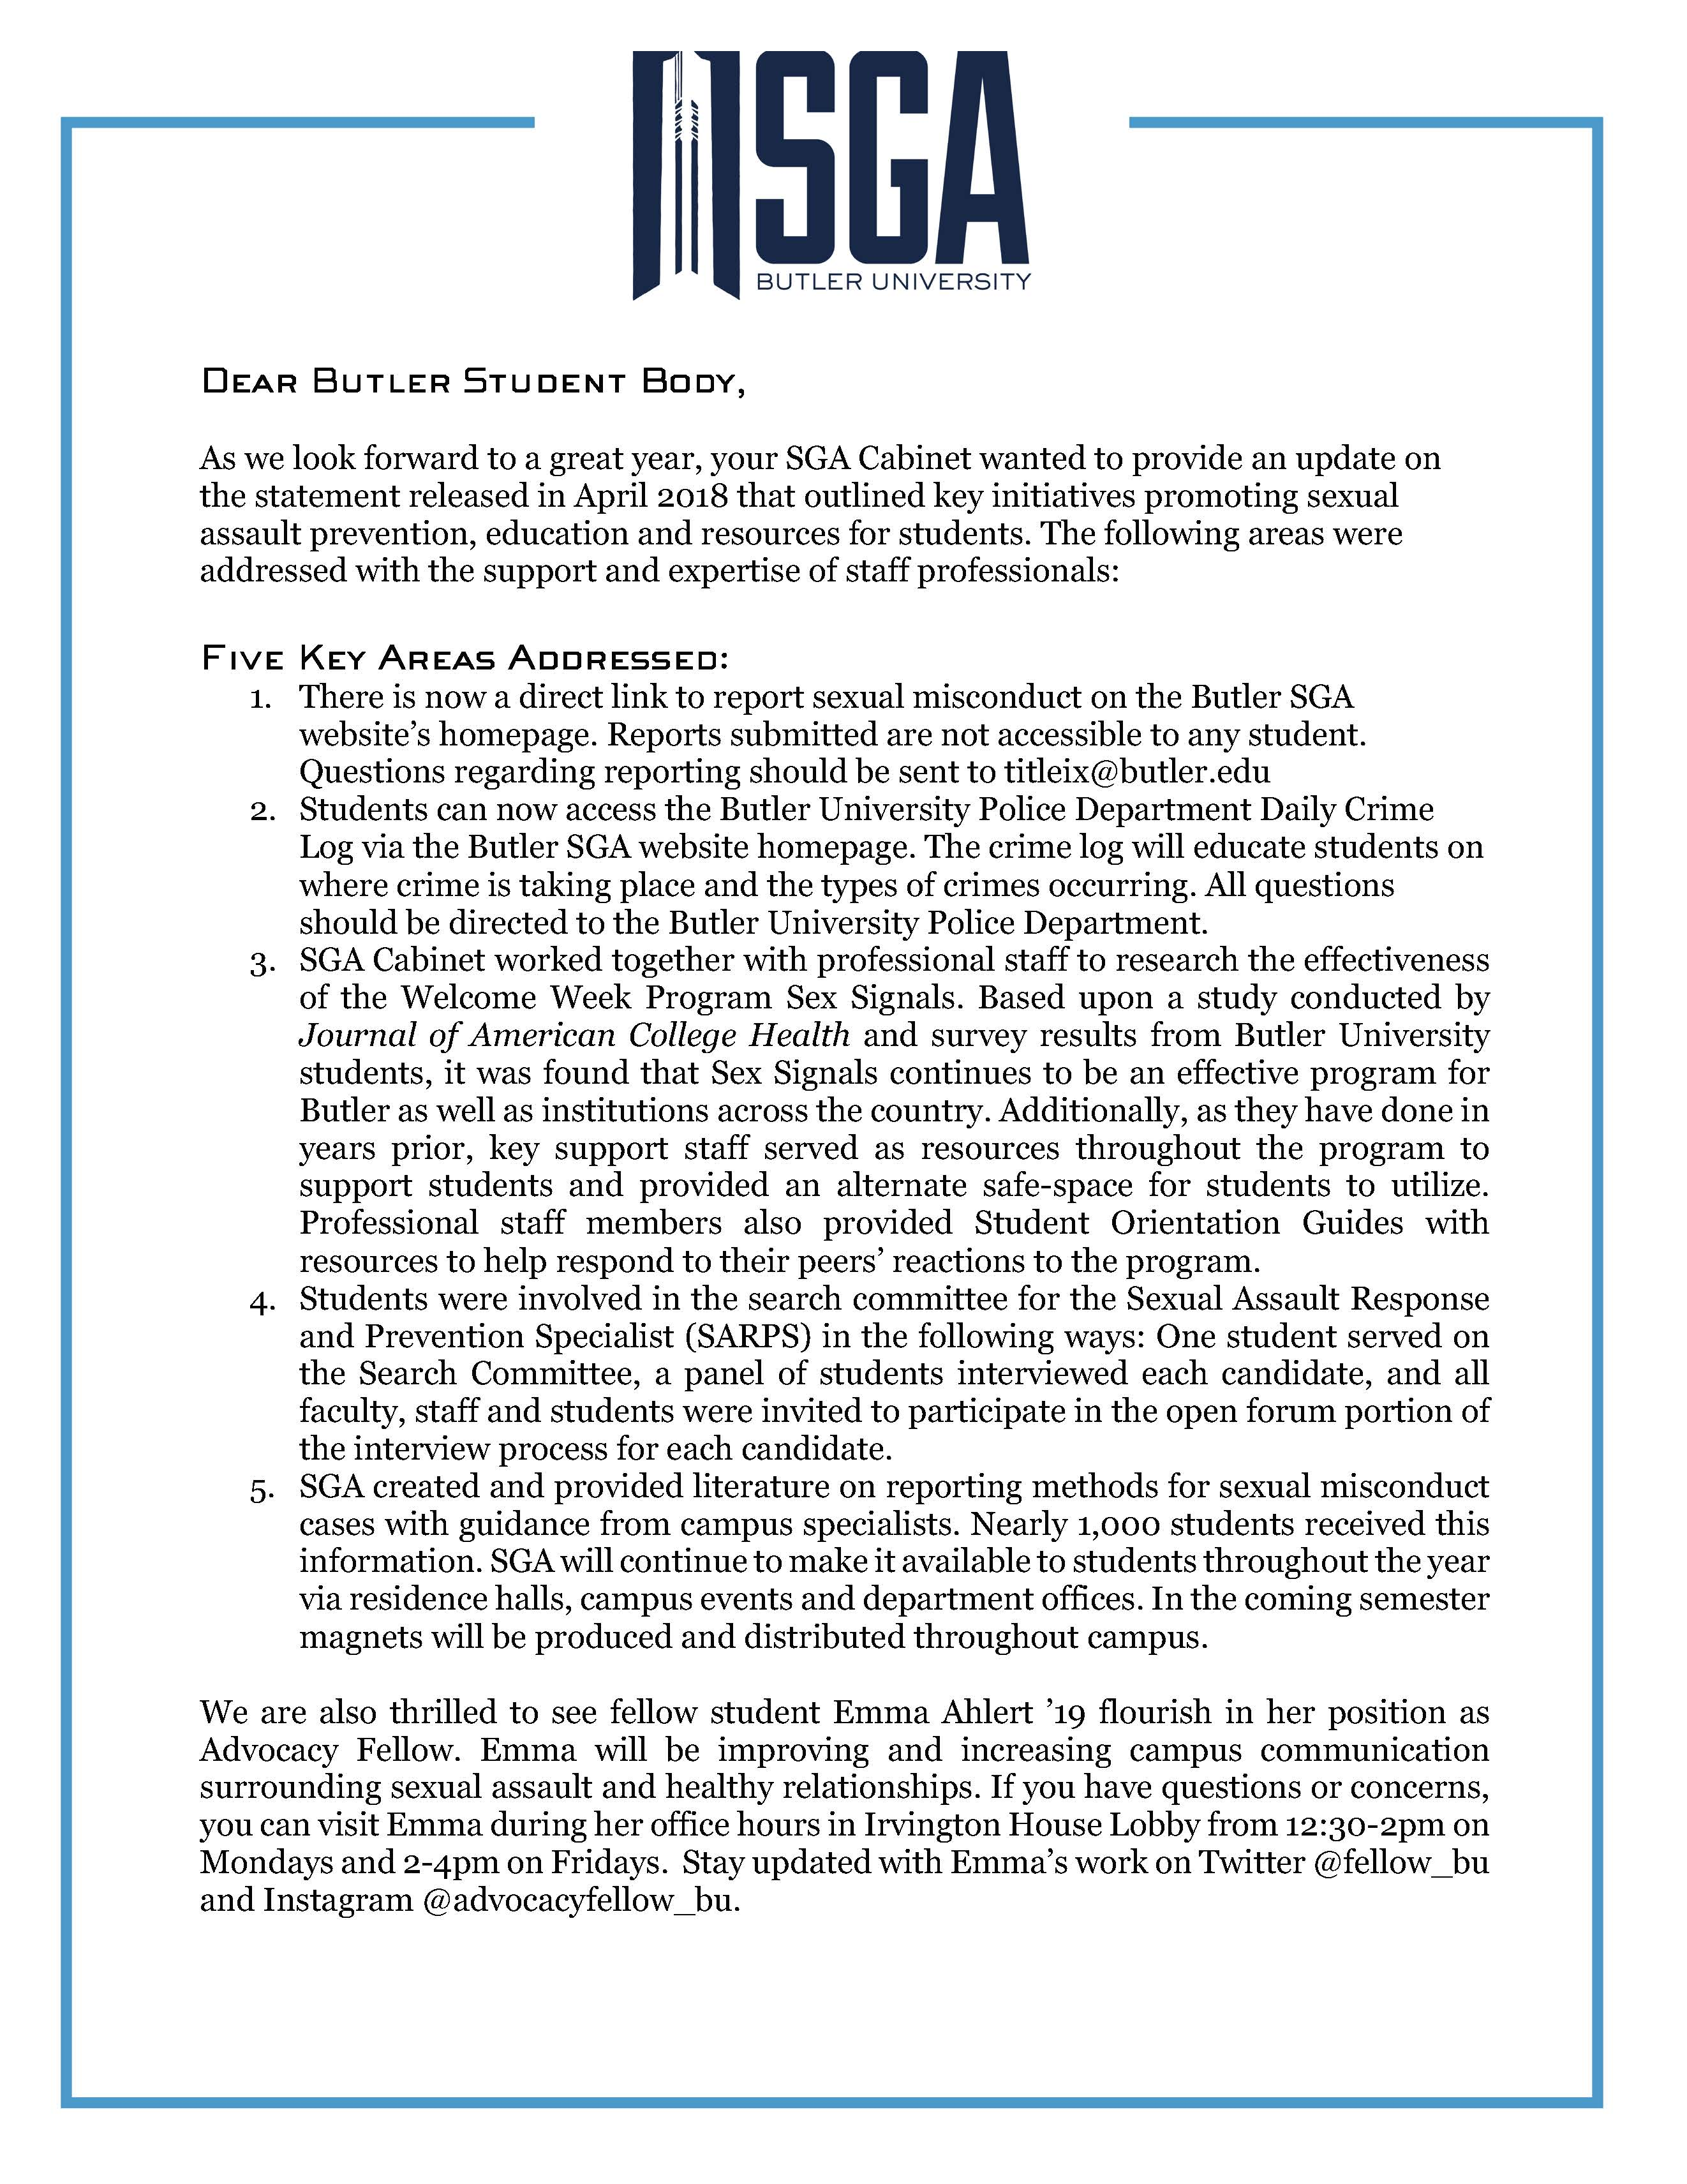 Commitment to Addressing Sexual Misconduct - Update: Page 1